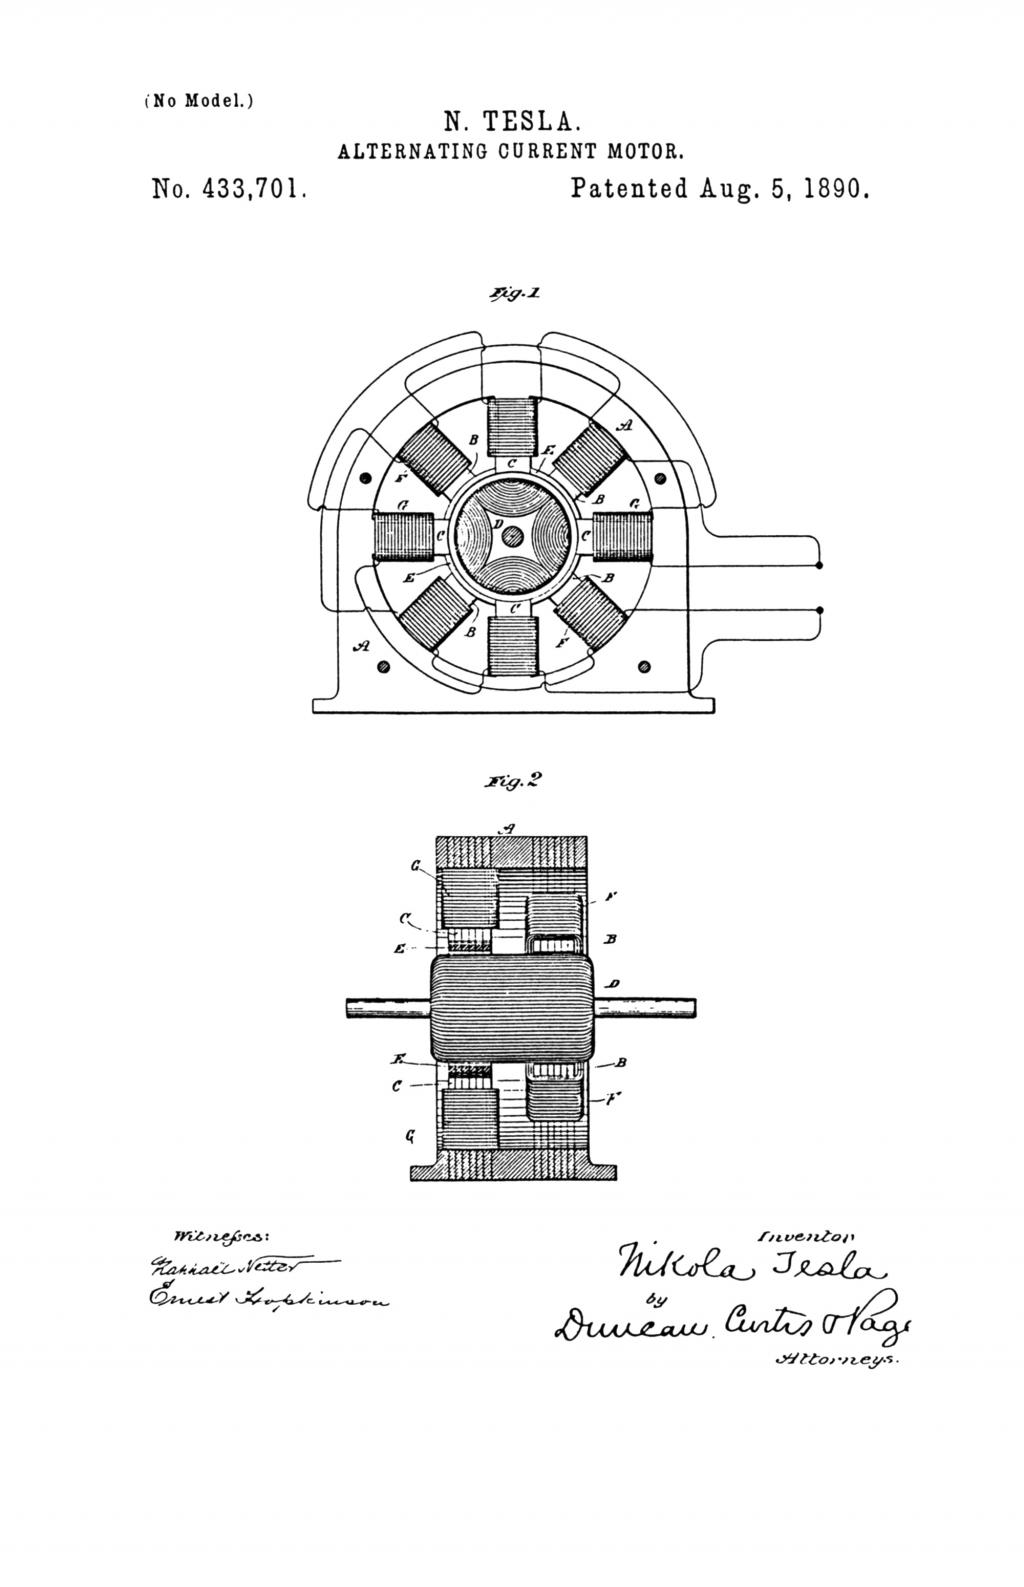 Nikola Tesla U.S. Patent 433,701 - Alternating-Current Motor - Image 1